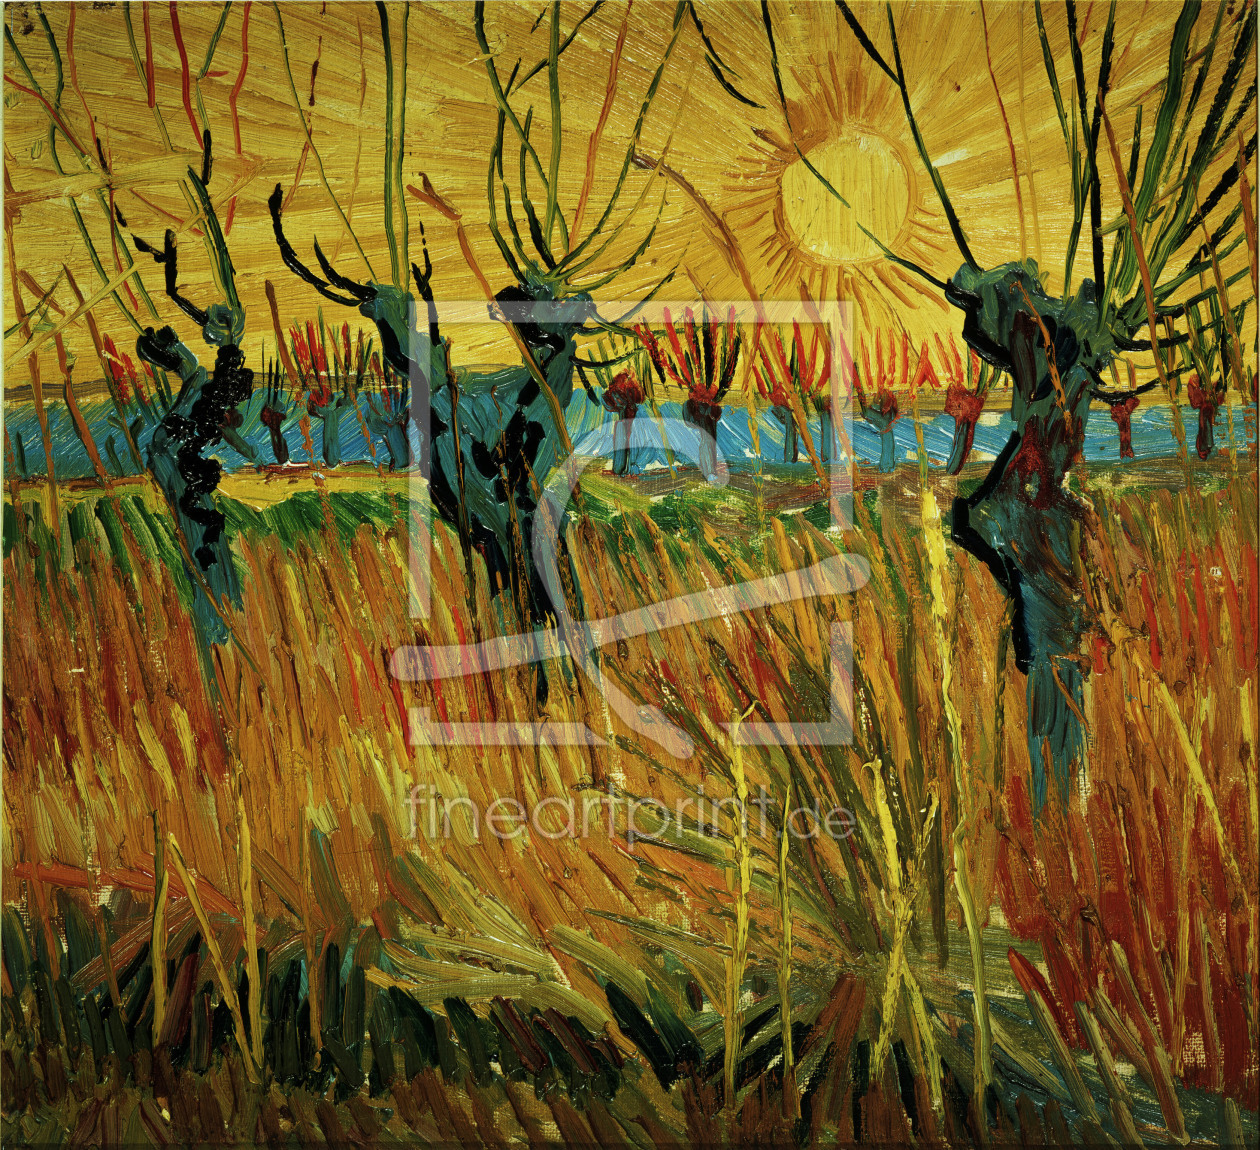 Bild-Nr.: 30002864 Van Gogh / Willows at Sunset / 1888 erstellt von van Gogh, Vincent